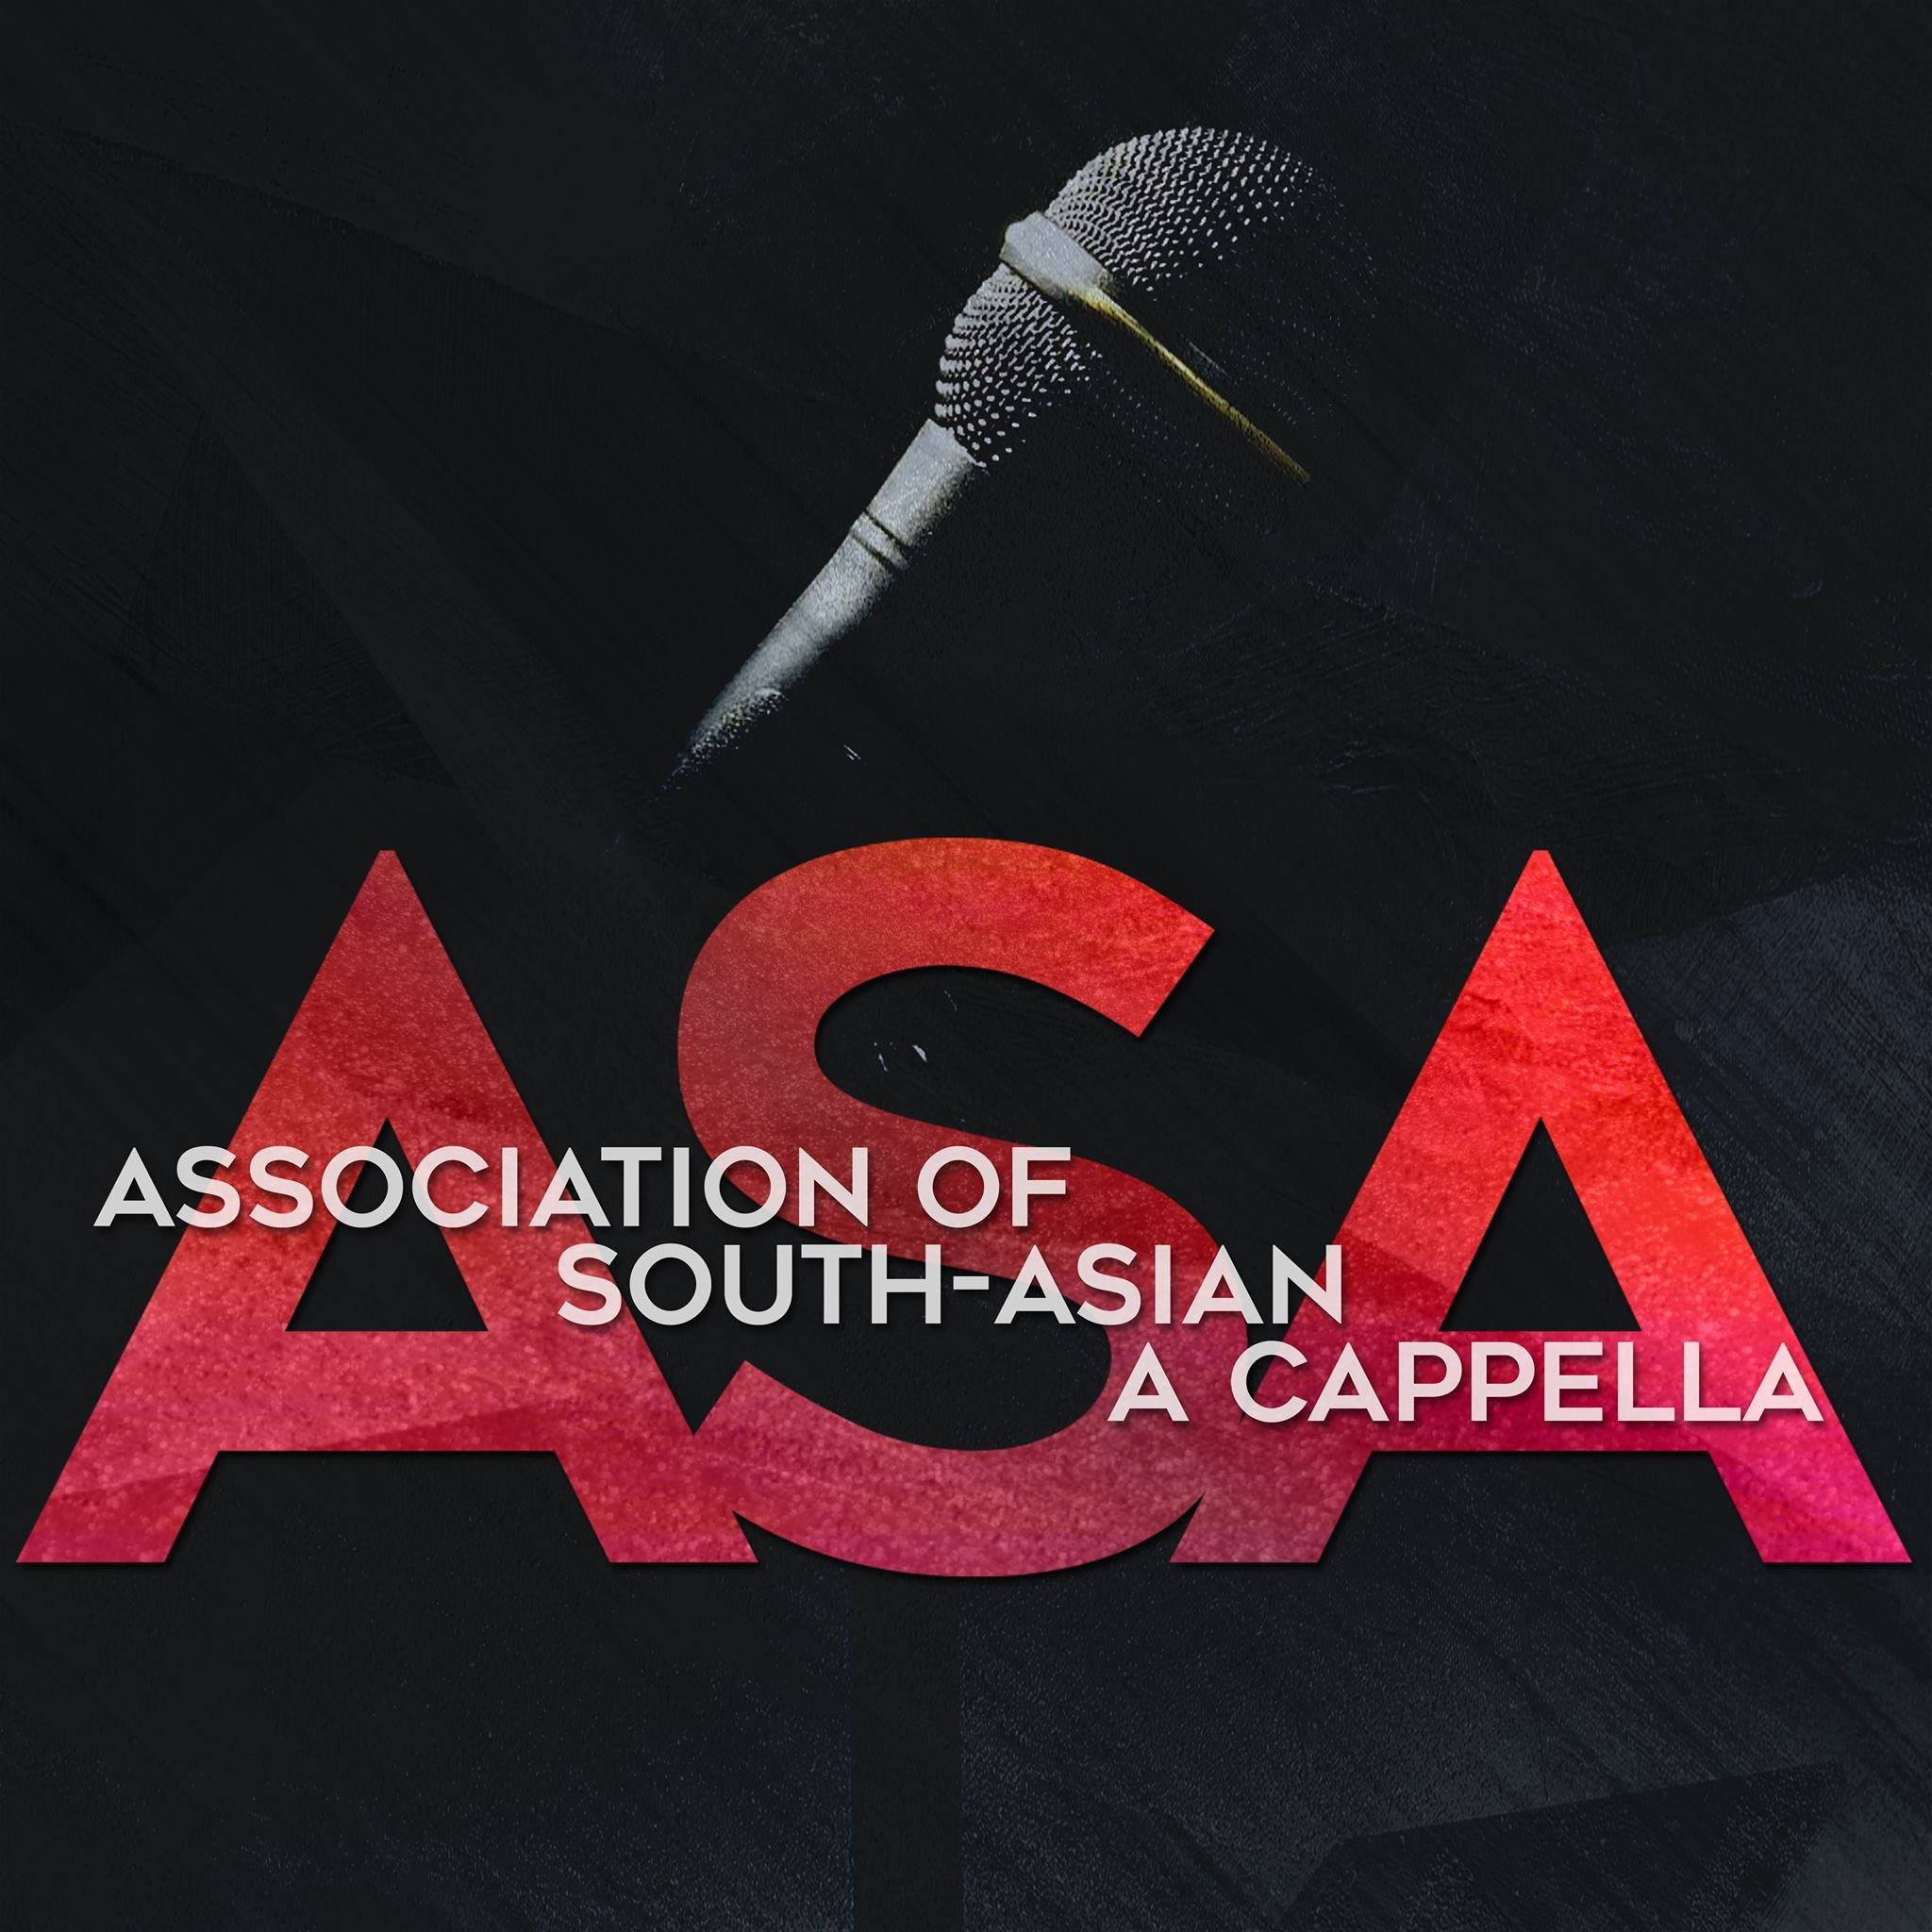 Association of South-Asian A Cappella